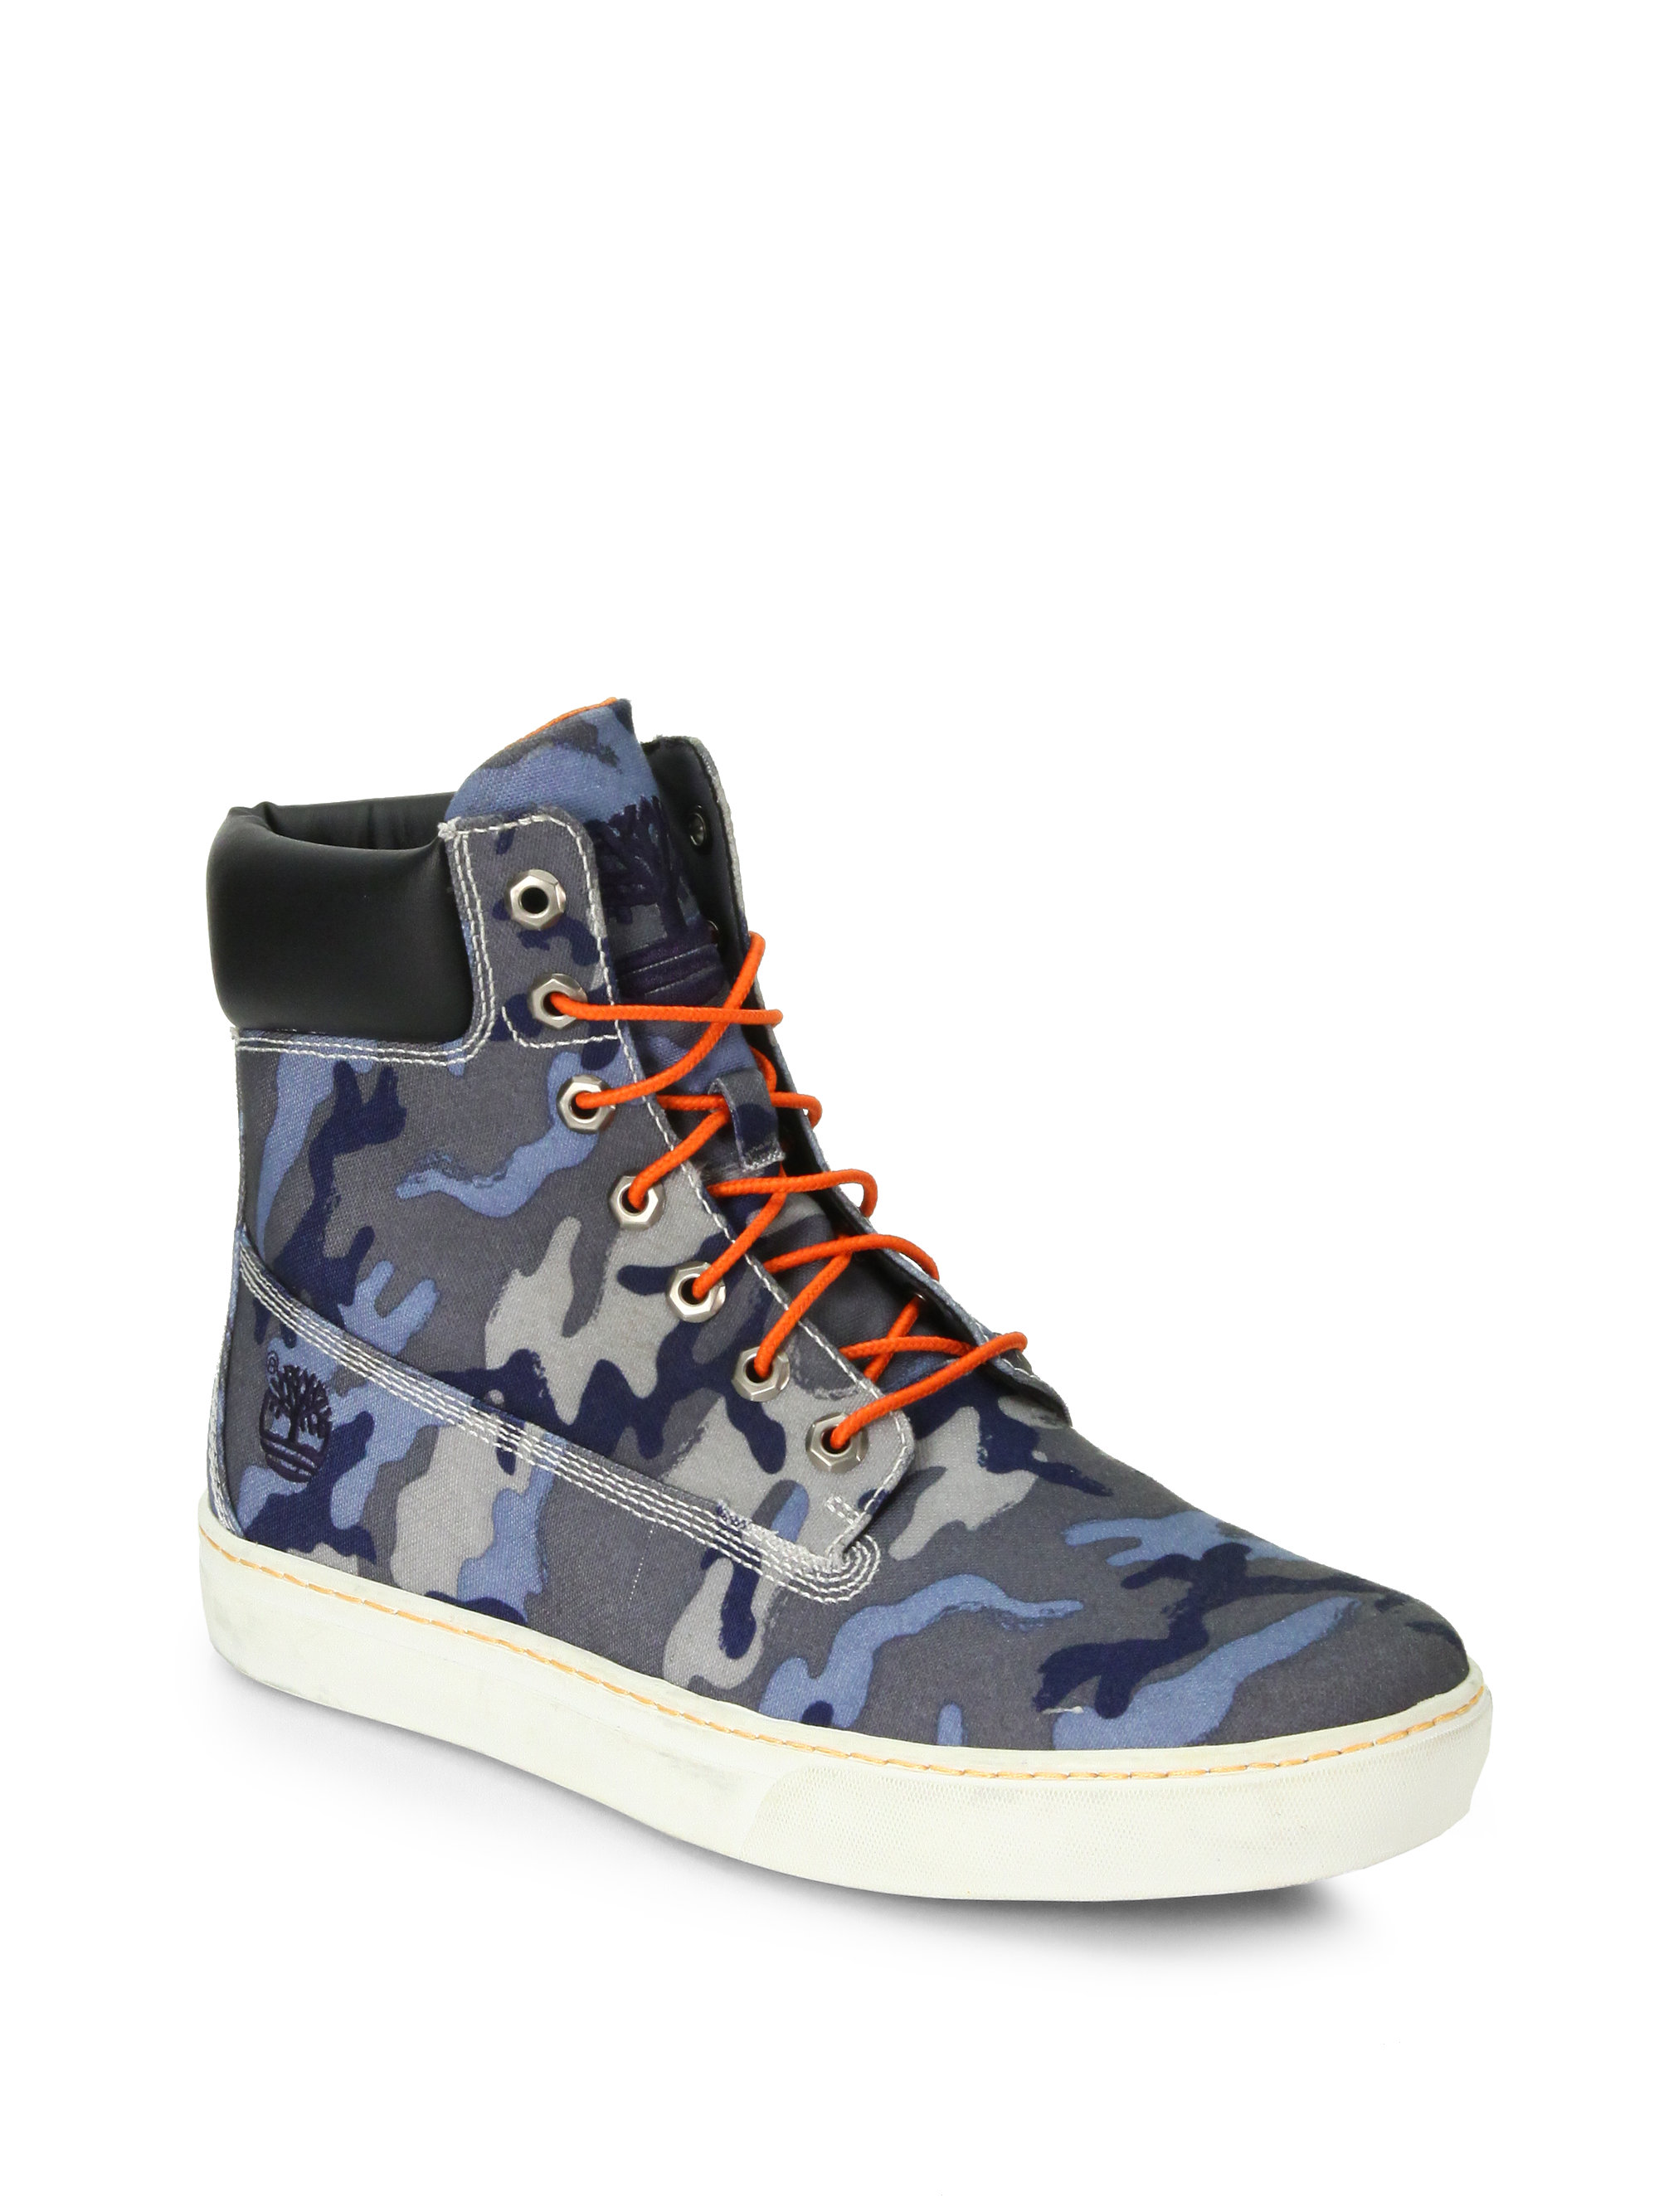 Timberland Blue Camo Boots for Men - Lyst